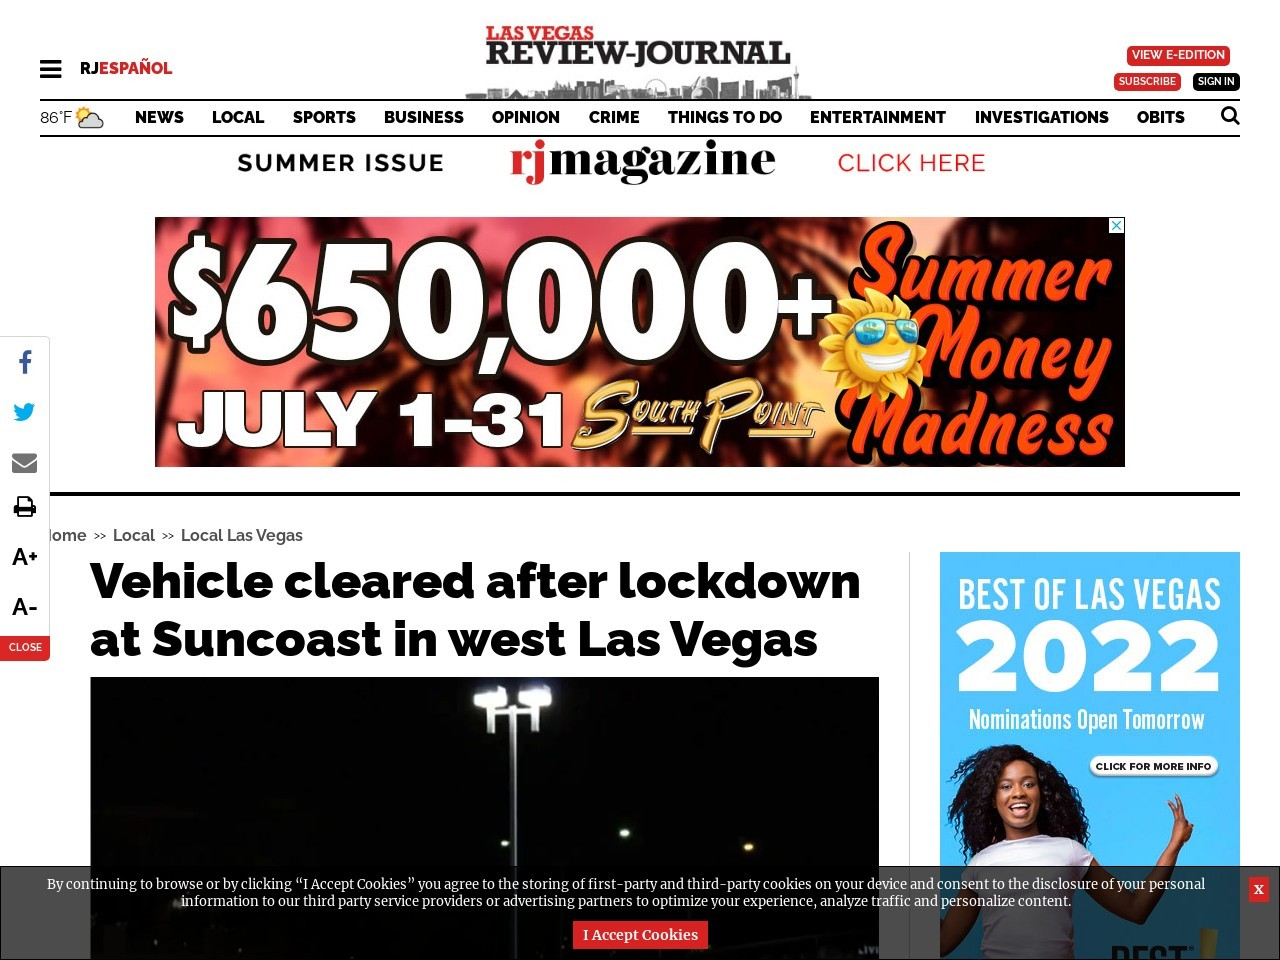 Vehicle cleared after lockdown at Suncoast in west Las Vegas